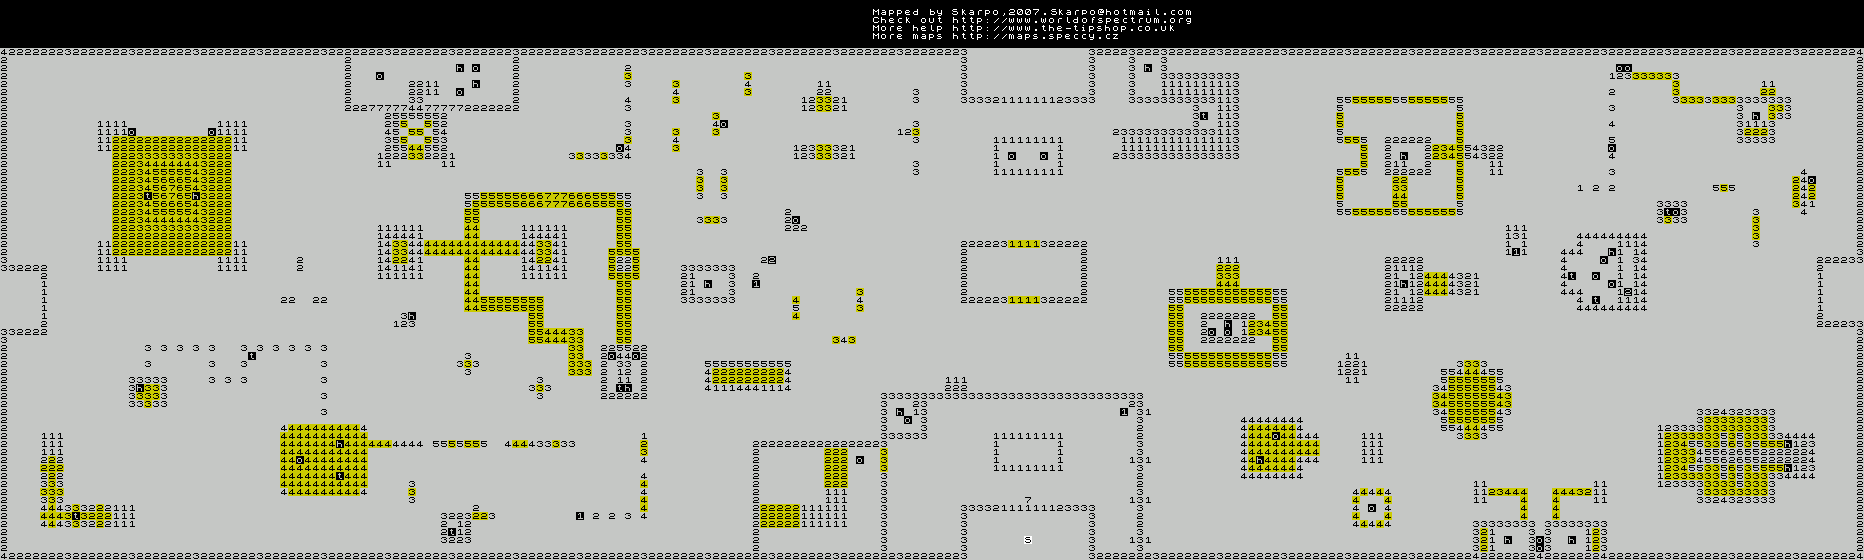 Boom Bot (2) - The Map